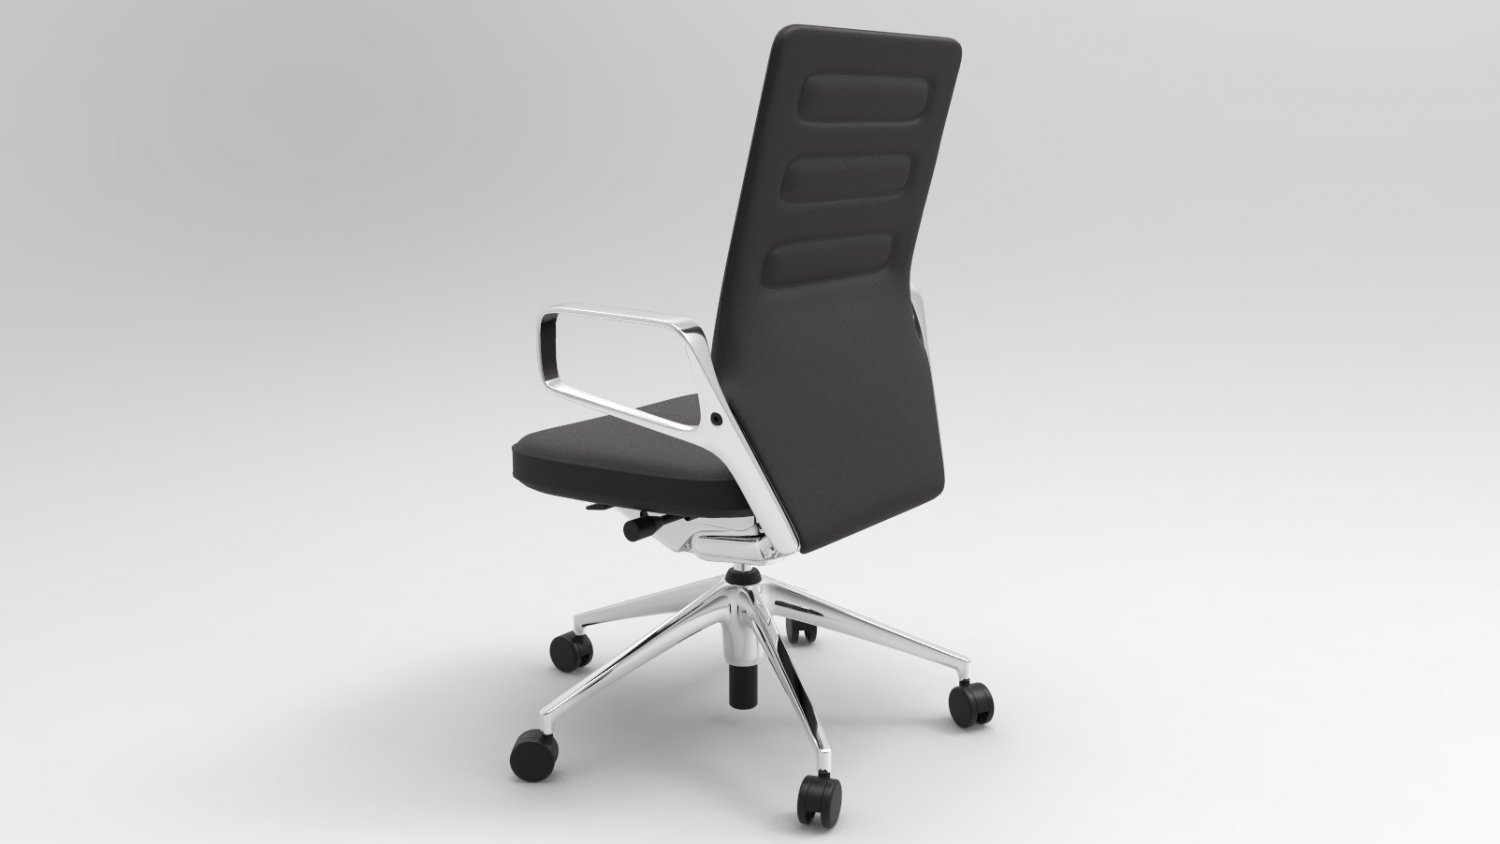 Vitra Office Chair Vitra Ac4 Office Chair 3d Model In Chair 3dexport